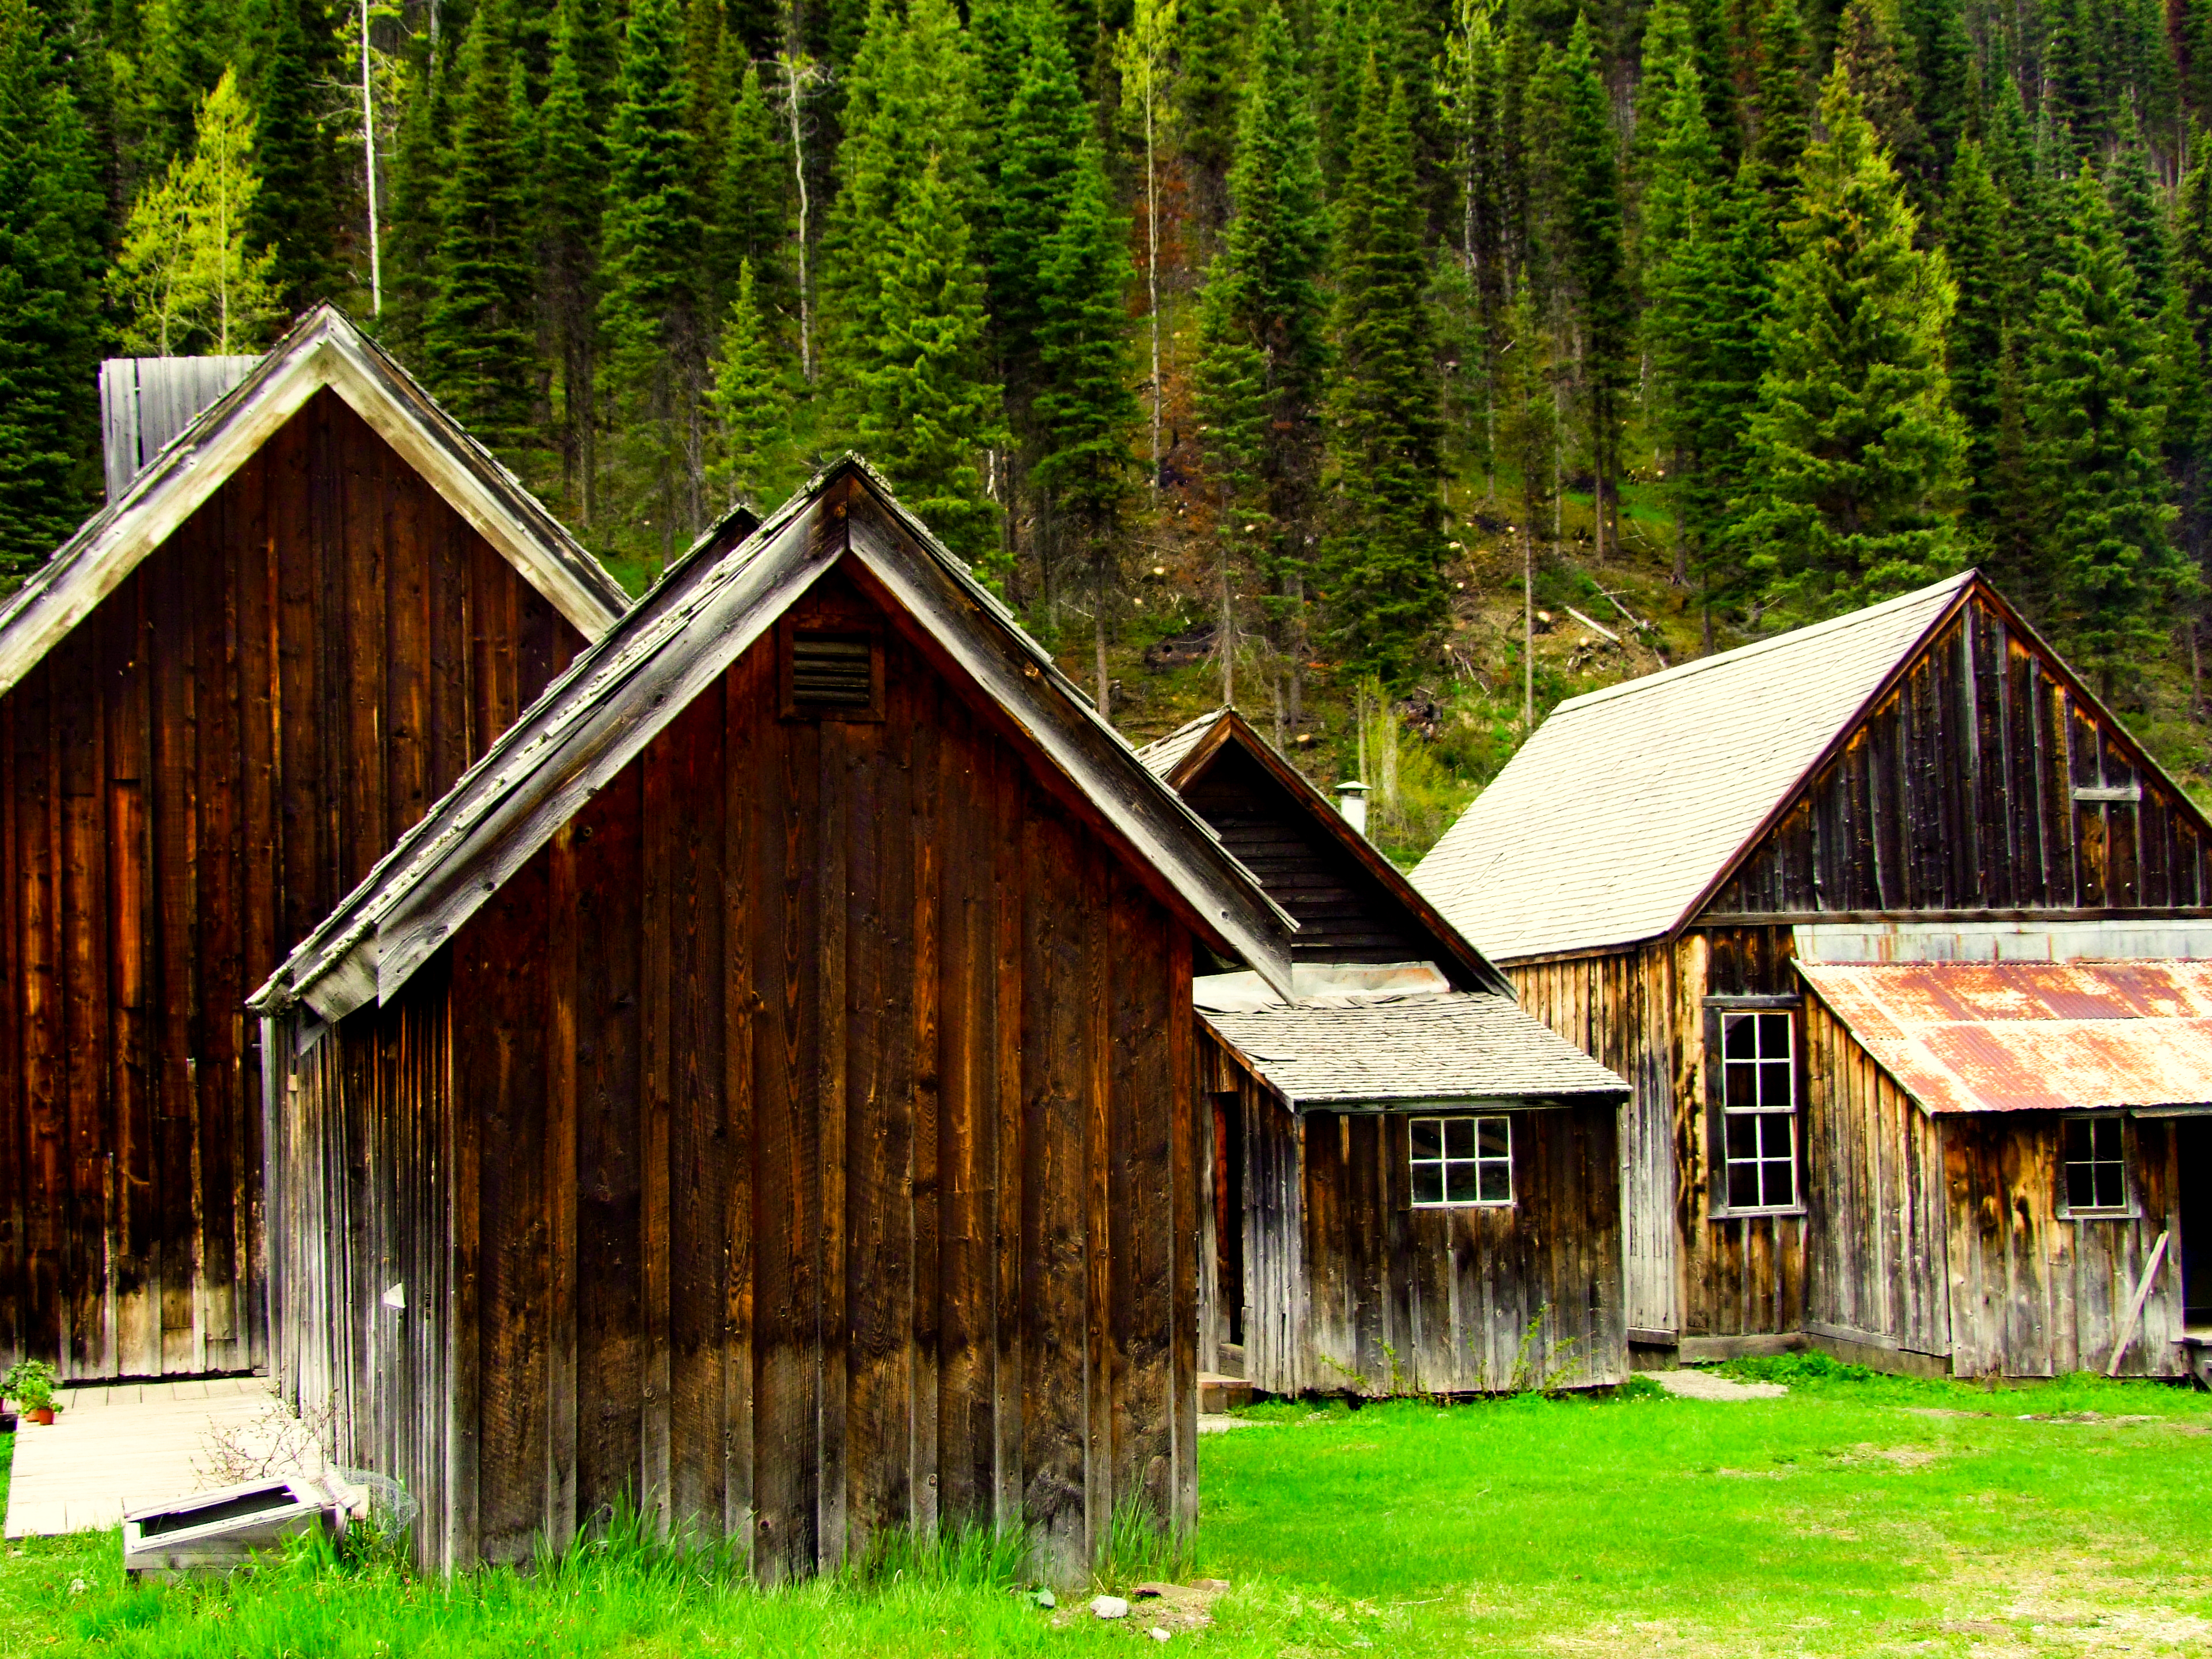 File:Barkerville BC buildings jpg - Wikimedia Commons